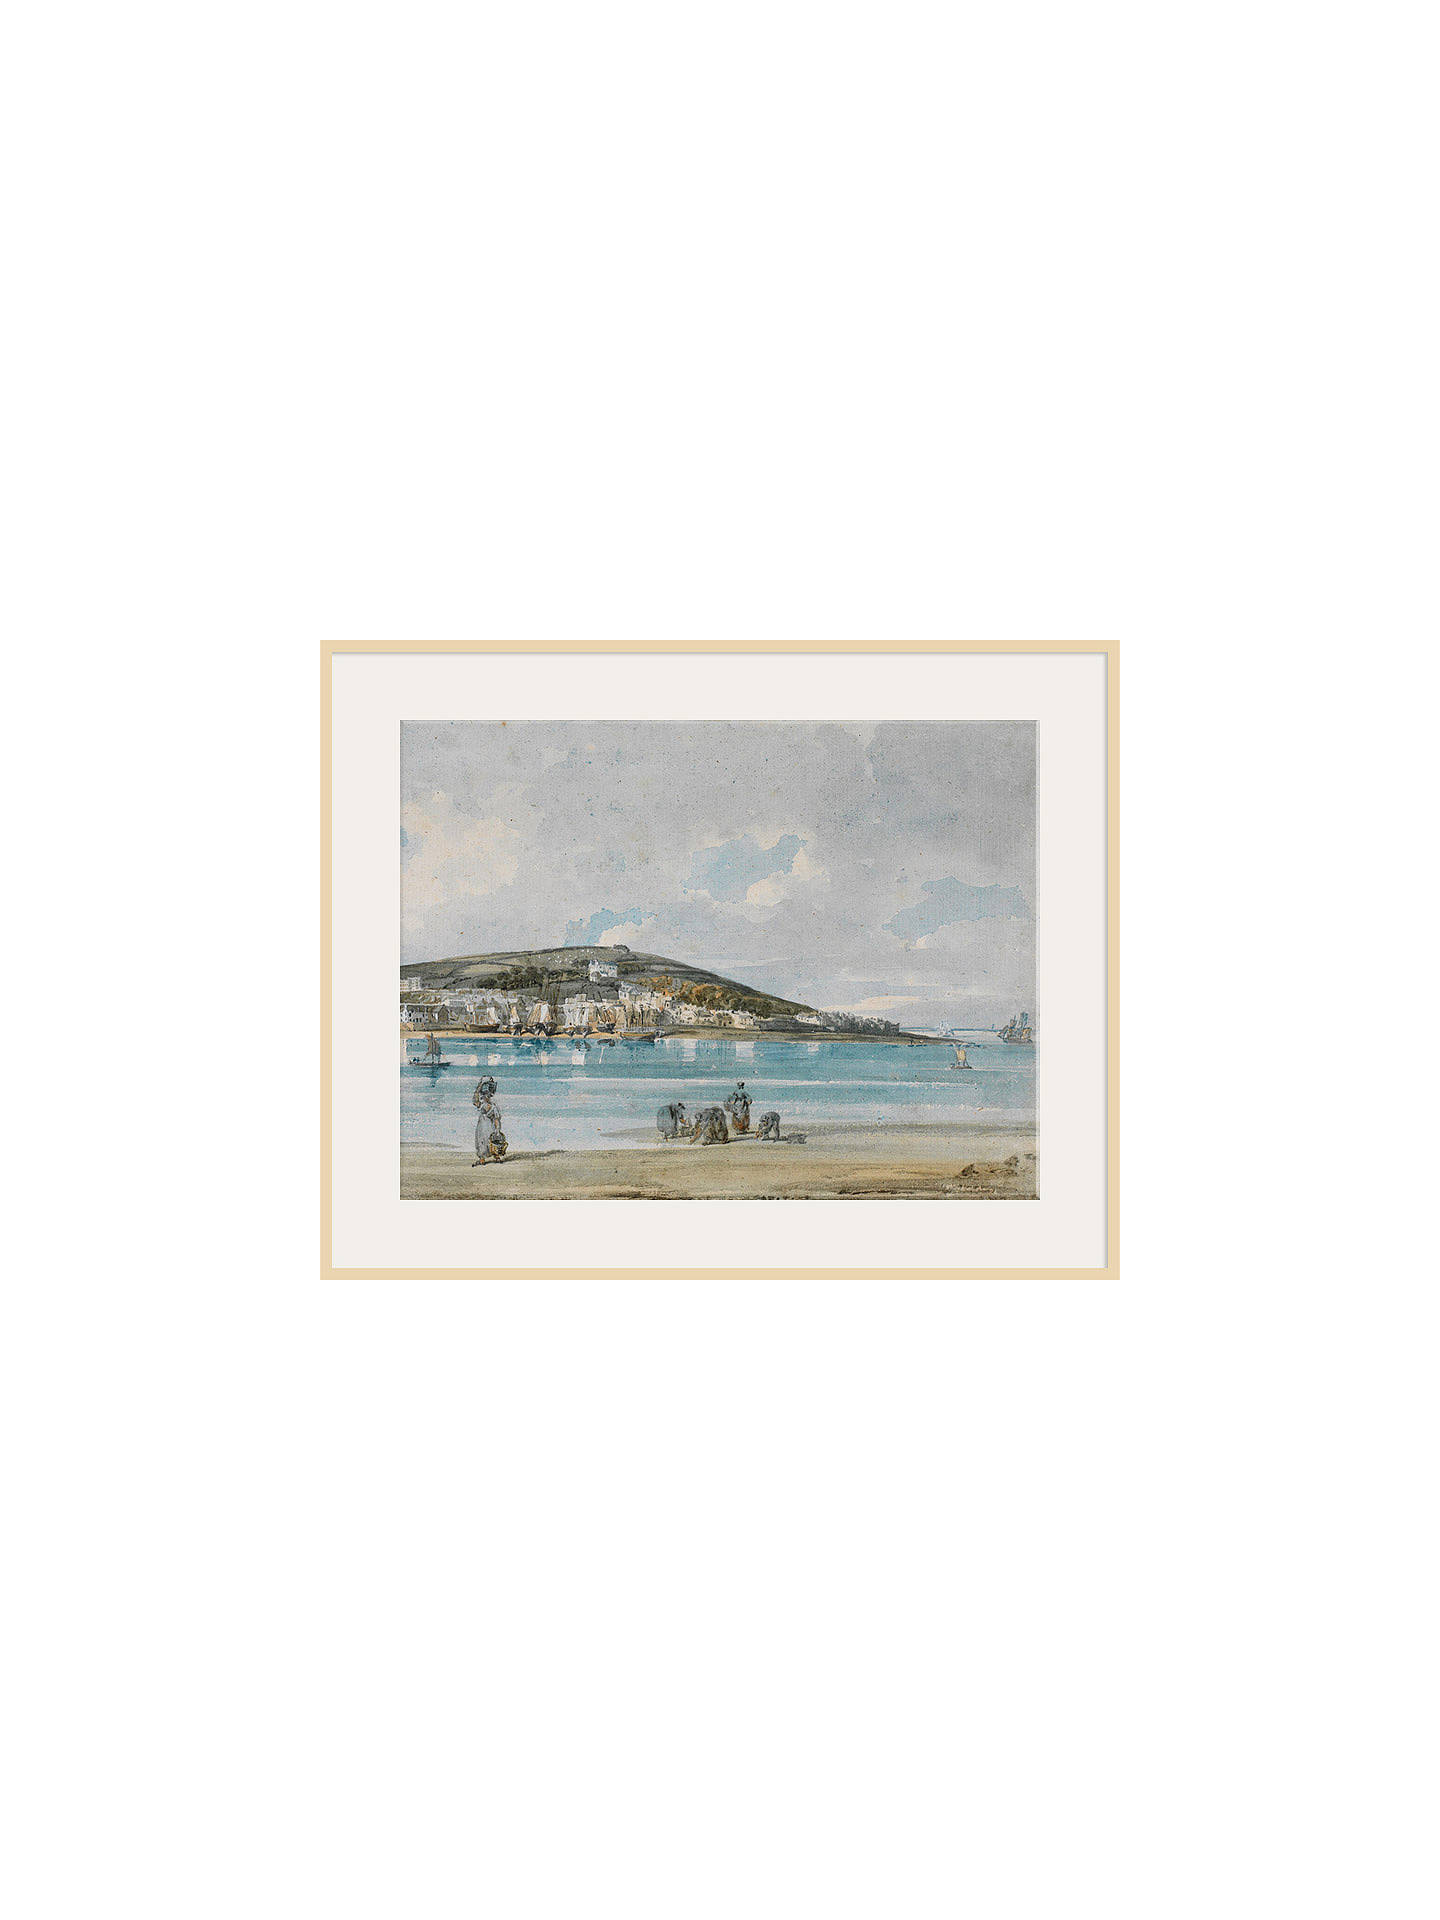 BuyThe Courtauld Gallery, Thomas Girtin - View of Appledore, North Devon, from Instow Sands 1798 Print, Natural Ash Framed Print, 40 x 50cm Online at johnlewis.com